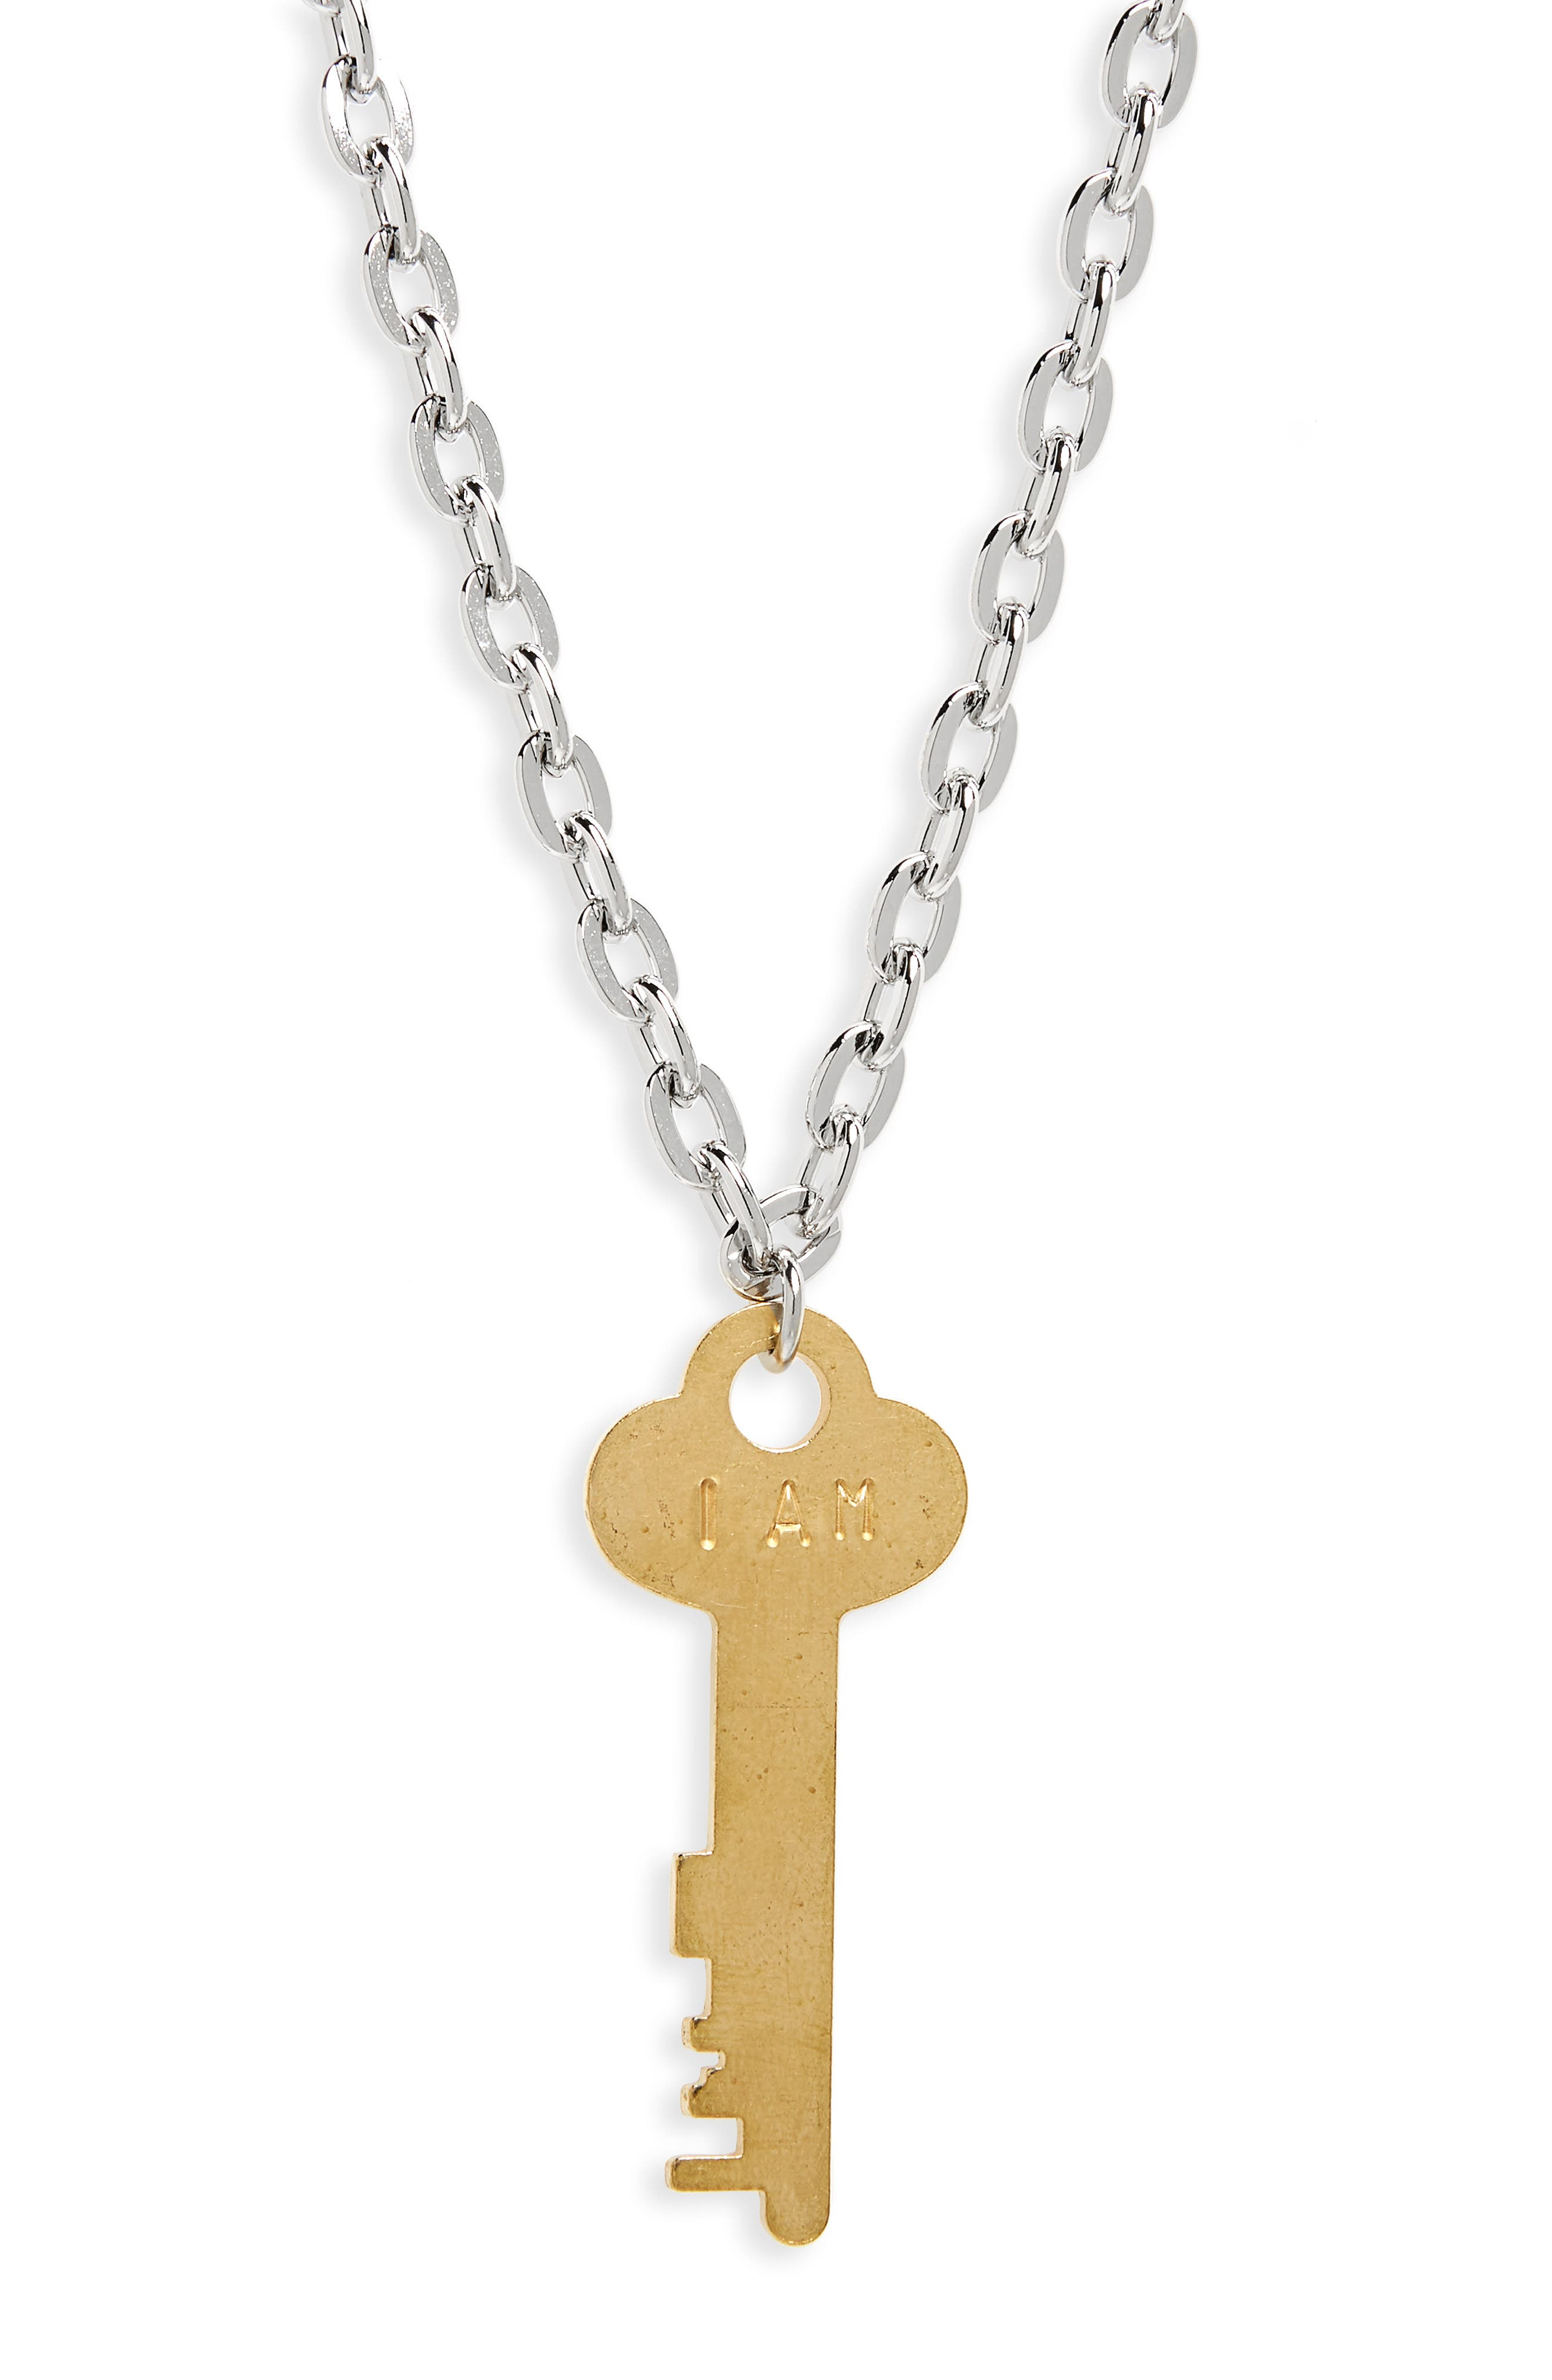 I Am Love Key Charm Necklace,                             Alternate thumbnail 2, color,                             Silver/ Gold Key